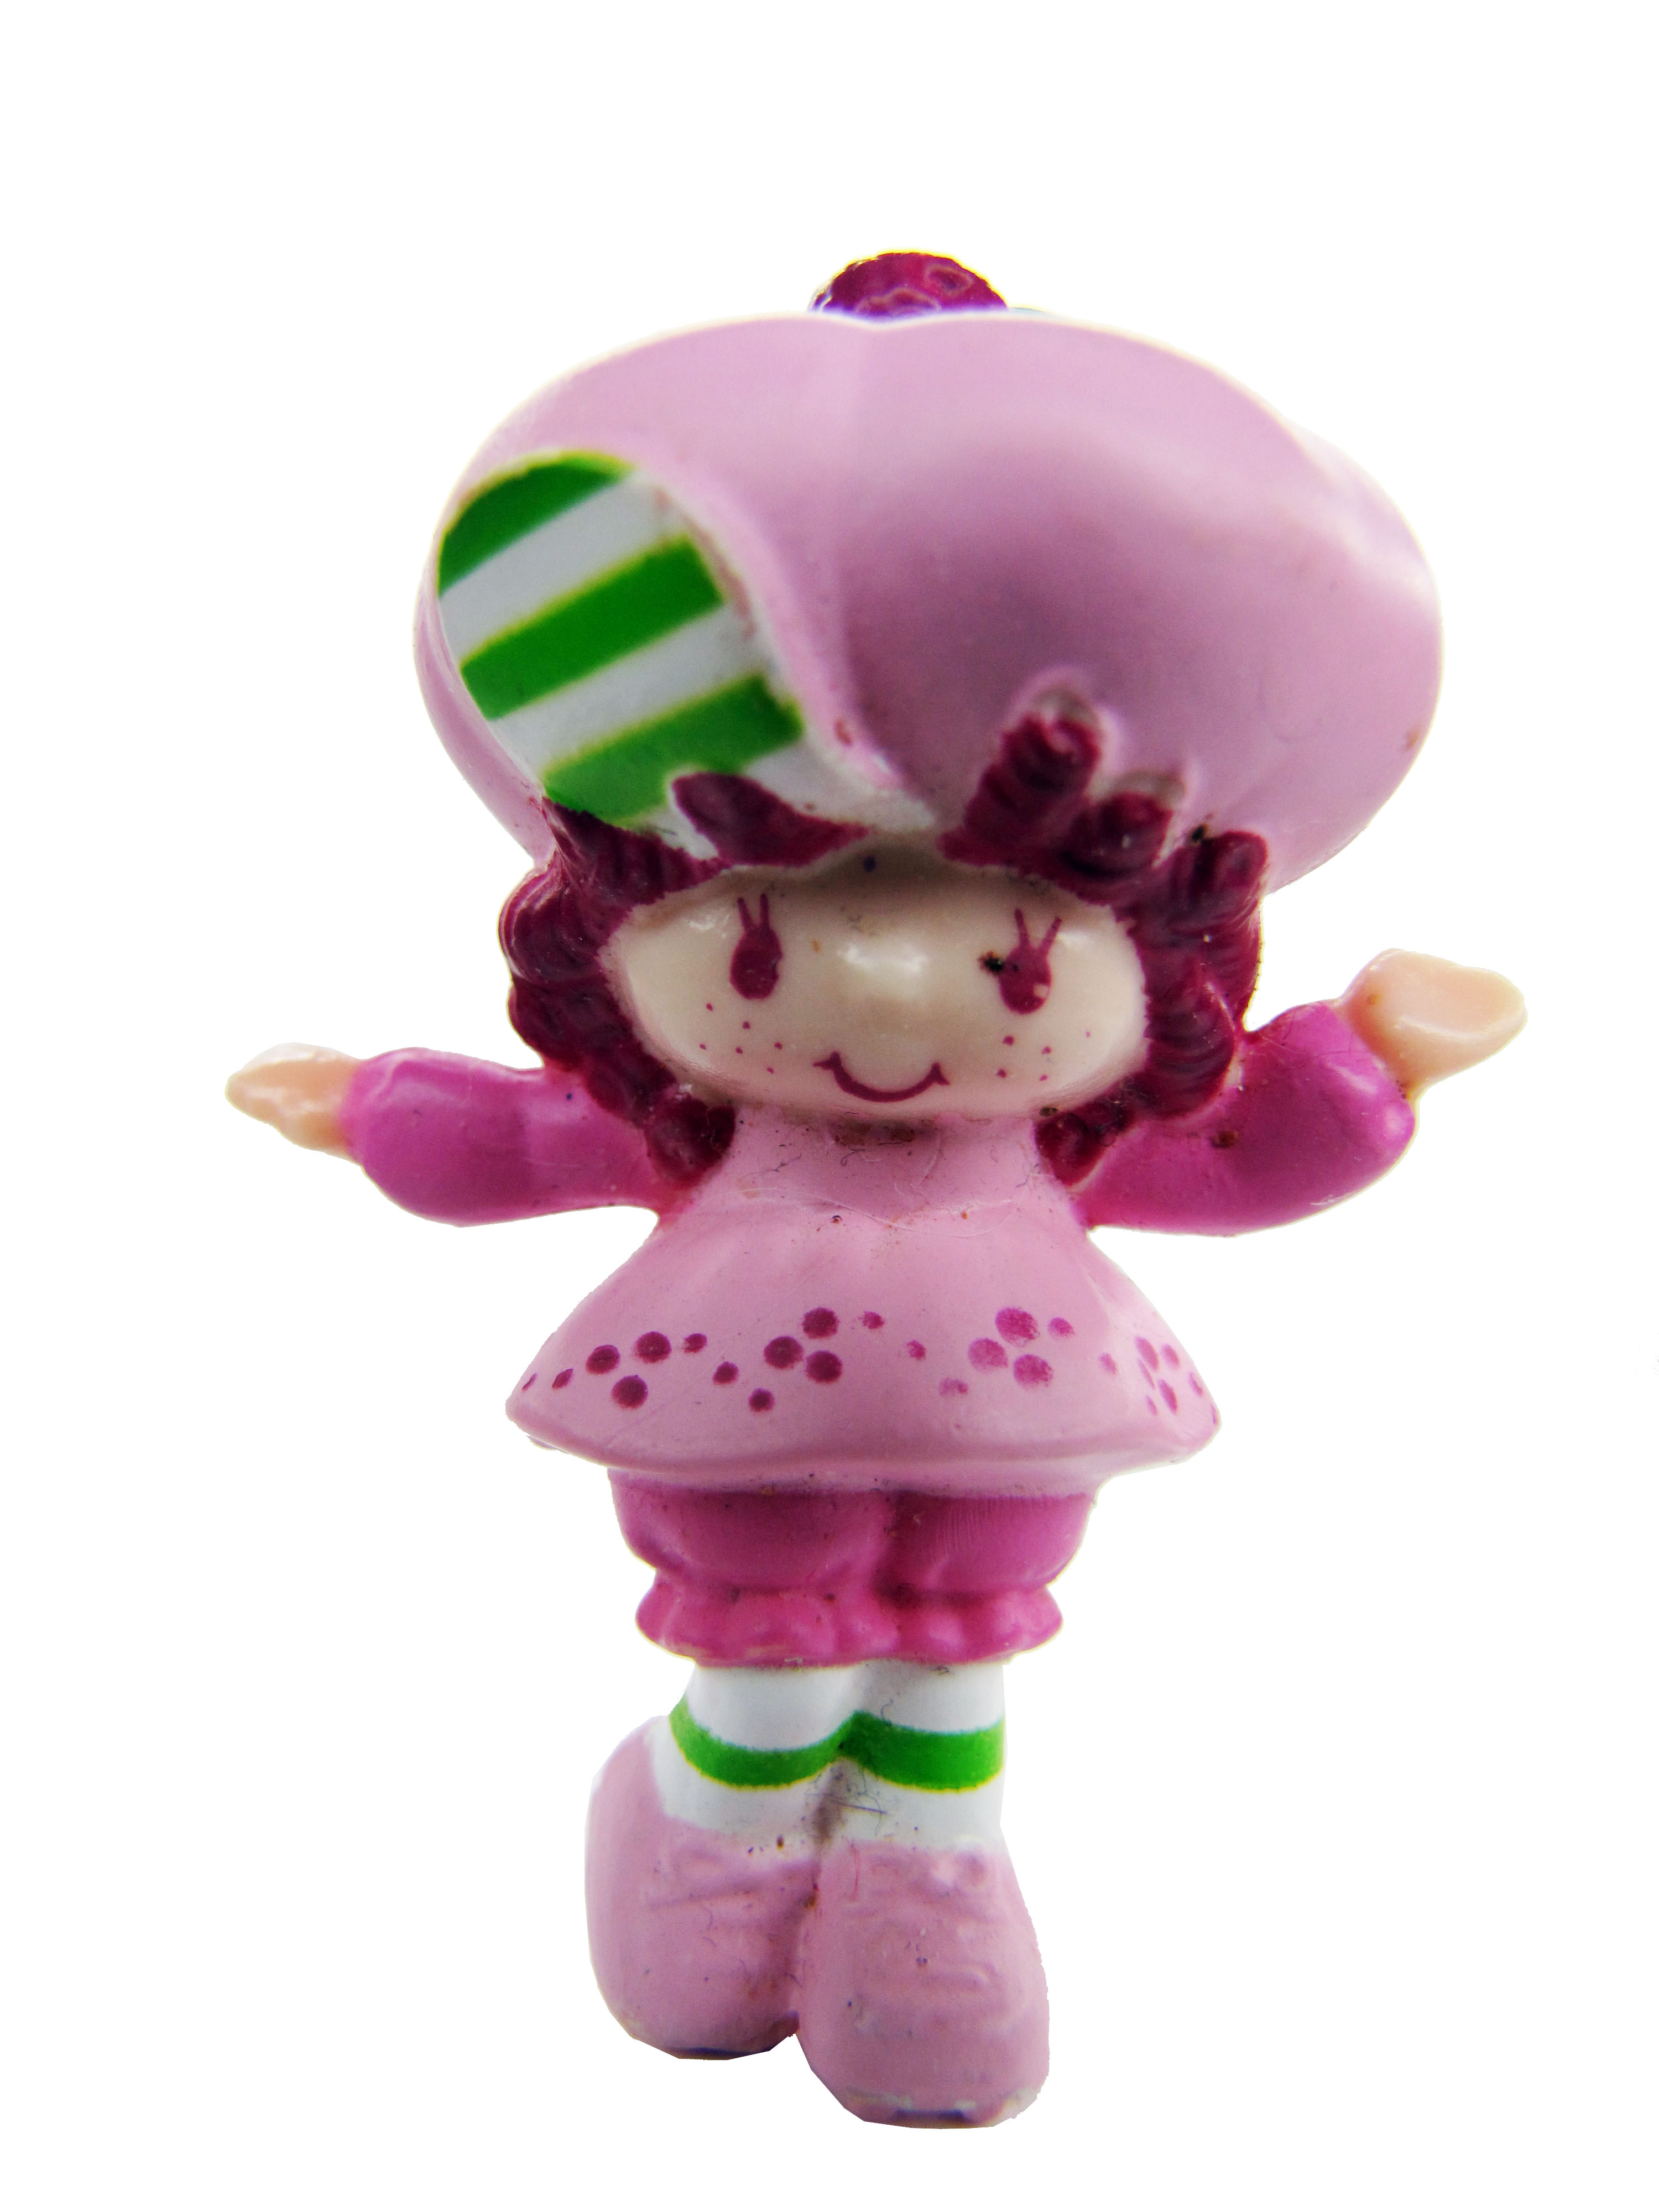 Vintage Strawberry Shortcake Raspberry Tart Skating